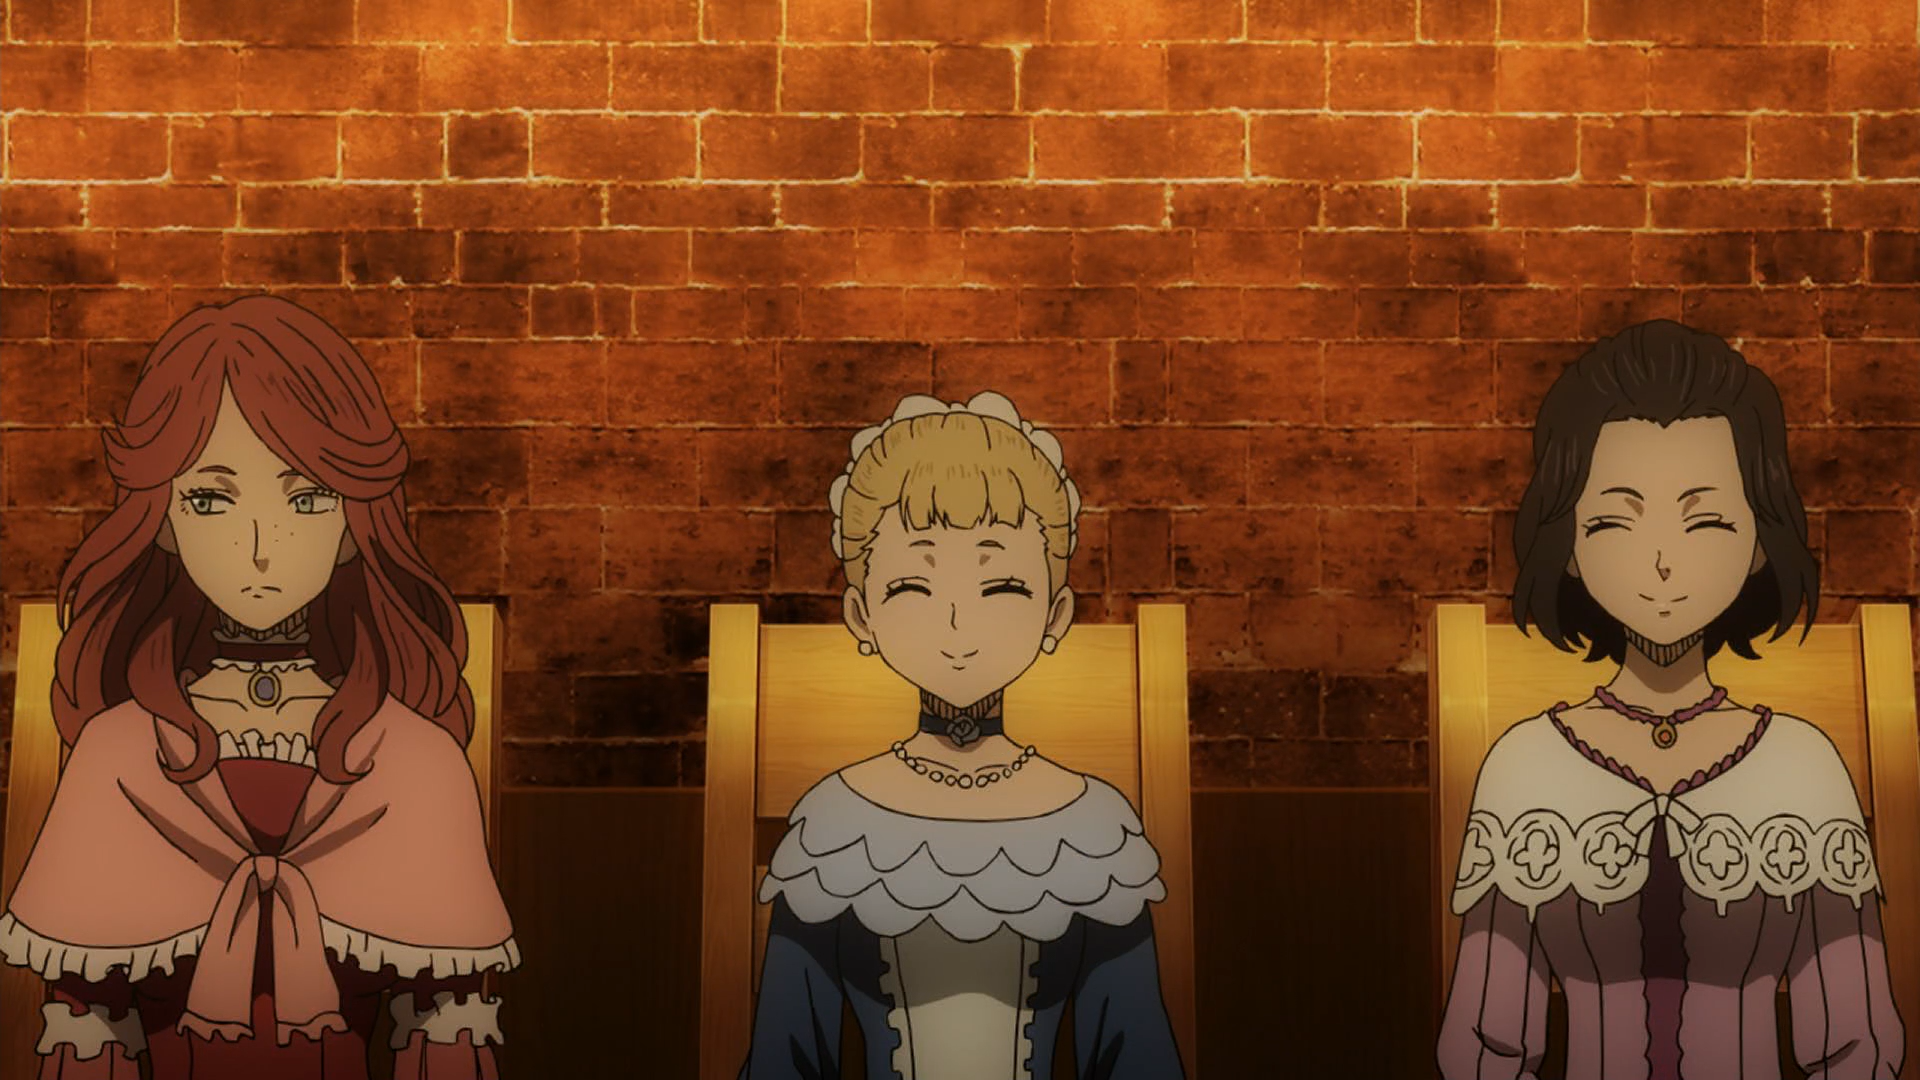 File:Rebecca and her friends introduce themselves.png